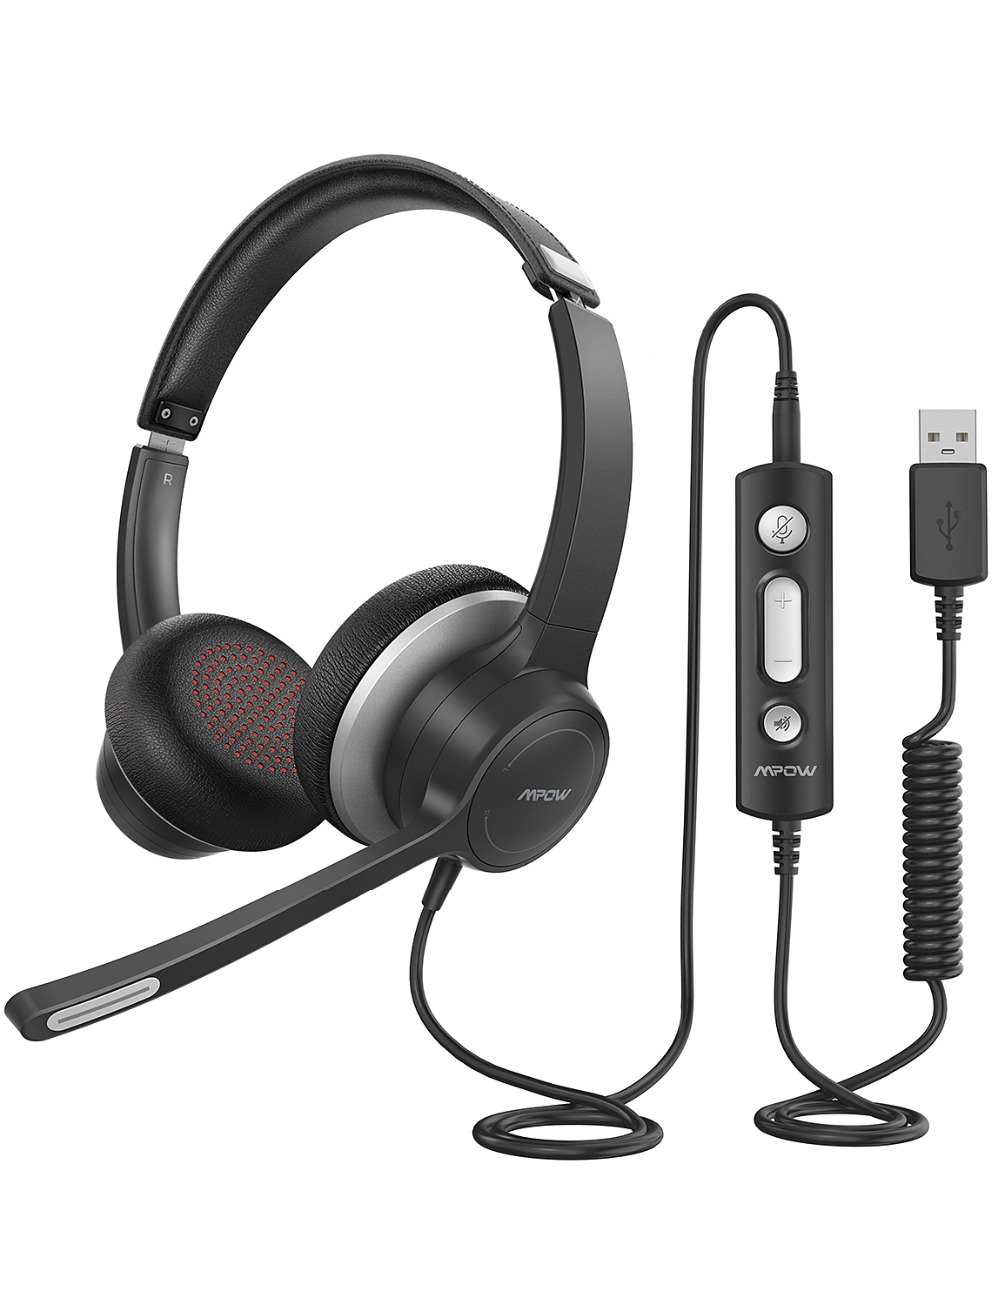 Mpow 328 Wireless Headphones USB 3.5mm Computer Headset With Microphone Noise Reduction Sound Card For PC Skype Call Center Mac (8)